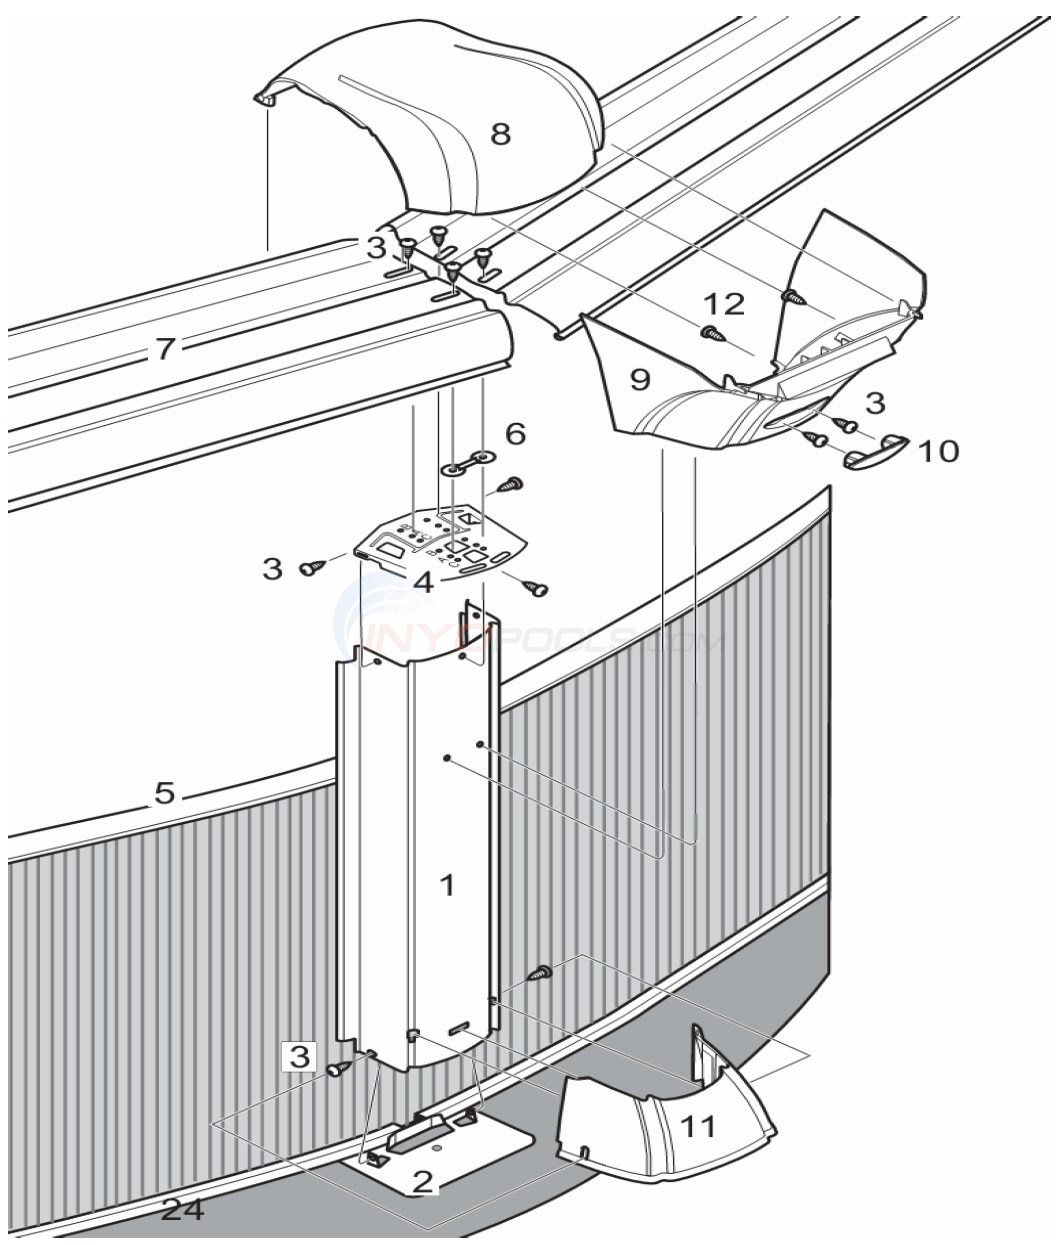 "Belize 18' Round 52"" Wall (Steel Top Rail, Steel Upright) Diagram"